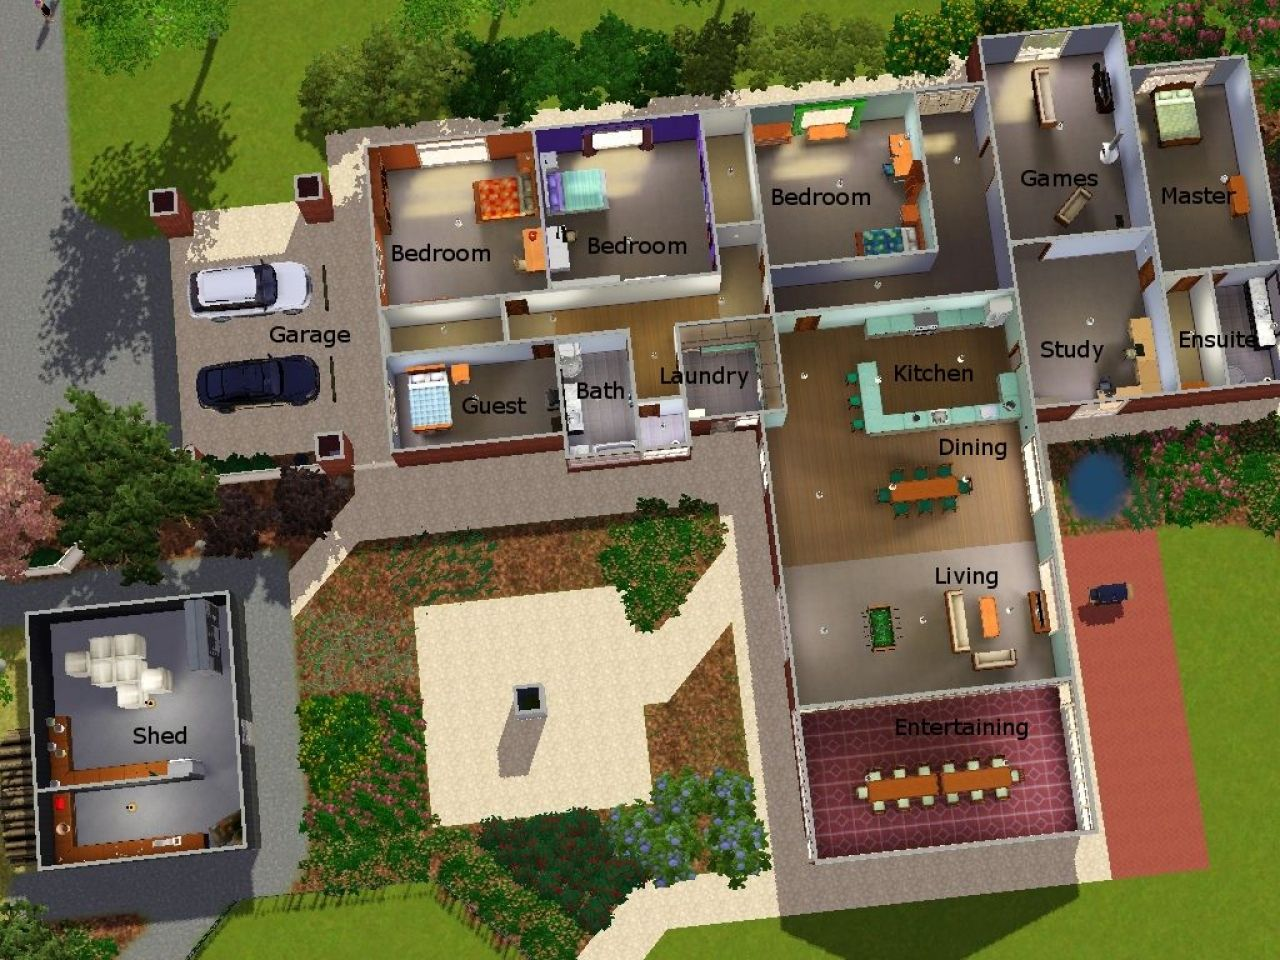 House Layouts For Sims 3 House Plans And Ideas Pinterest